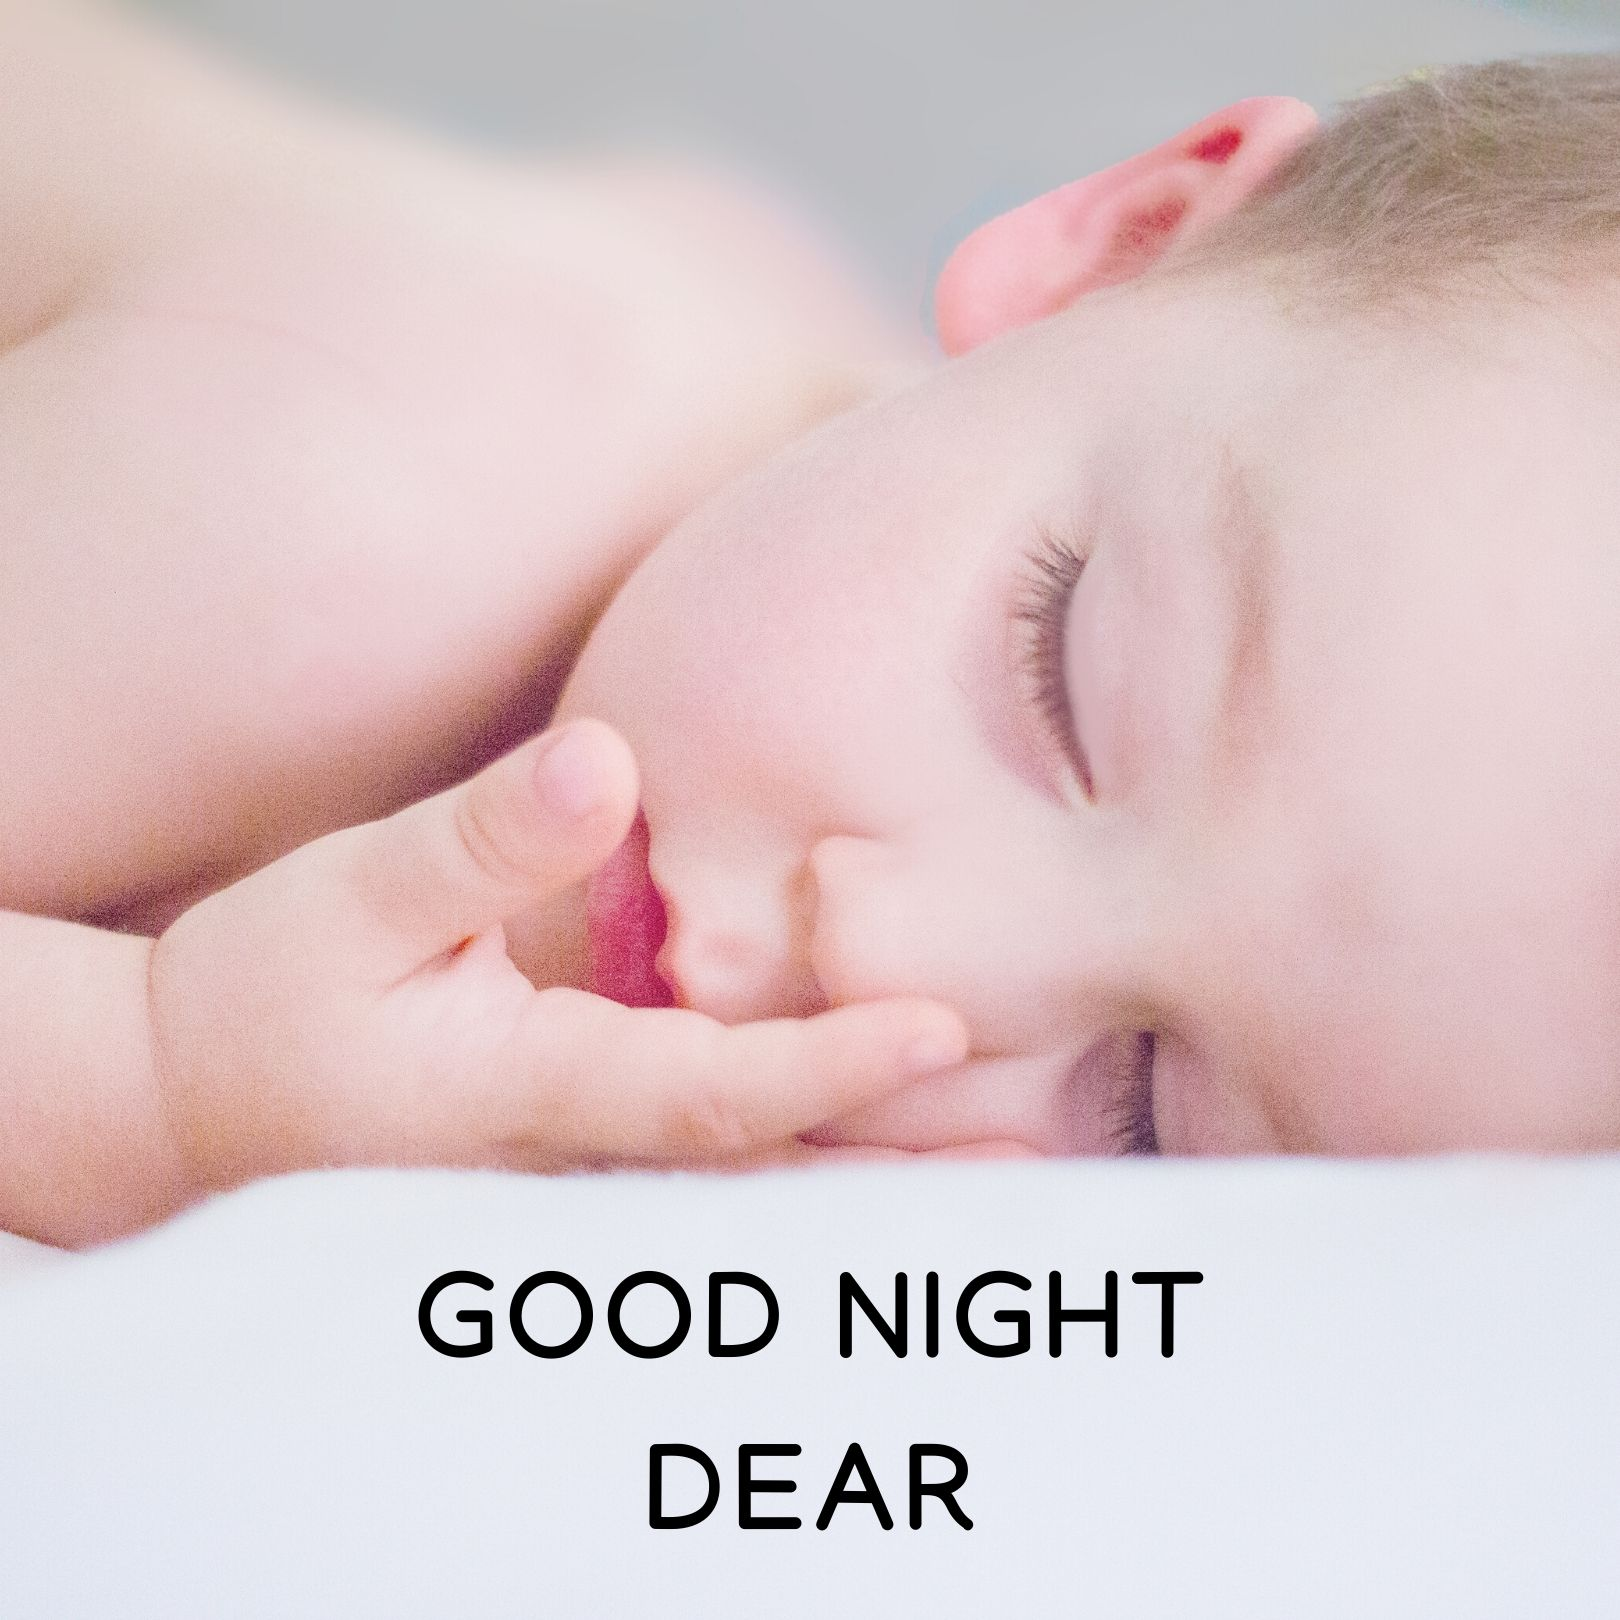 Good Night Dear baby image full HD free download.